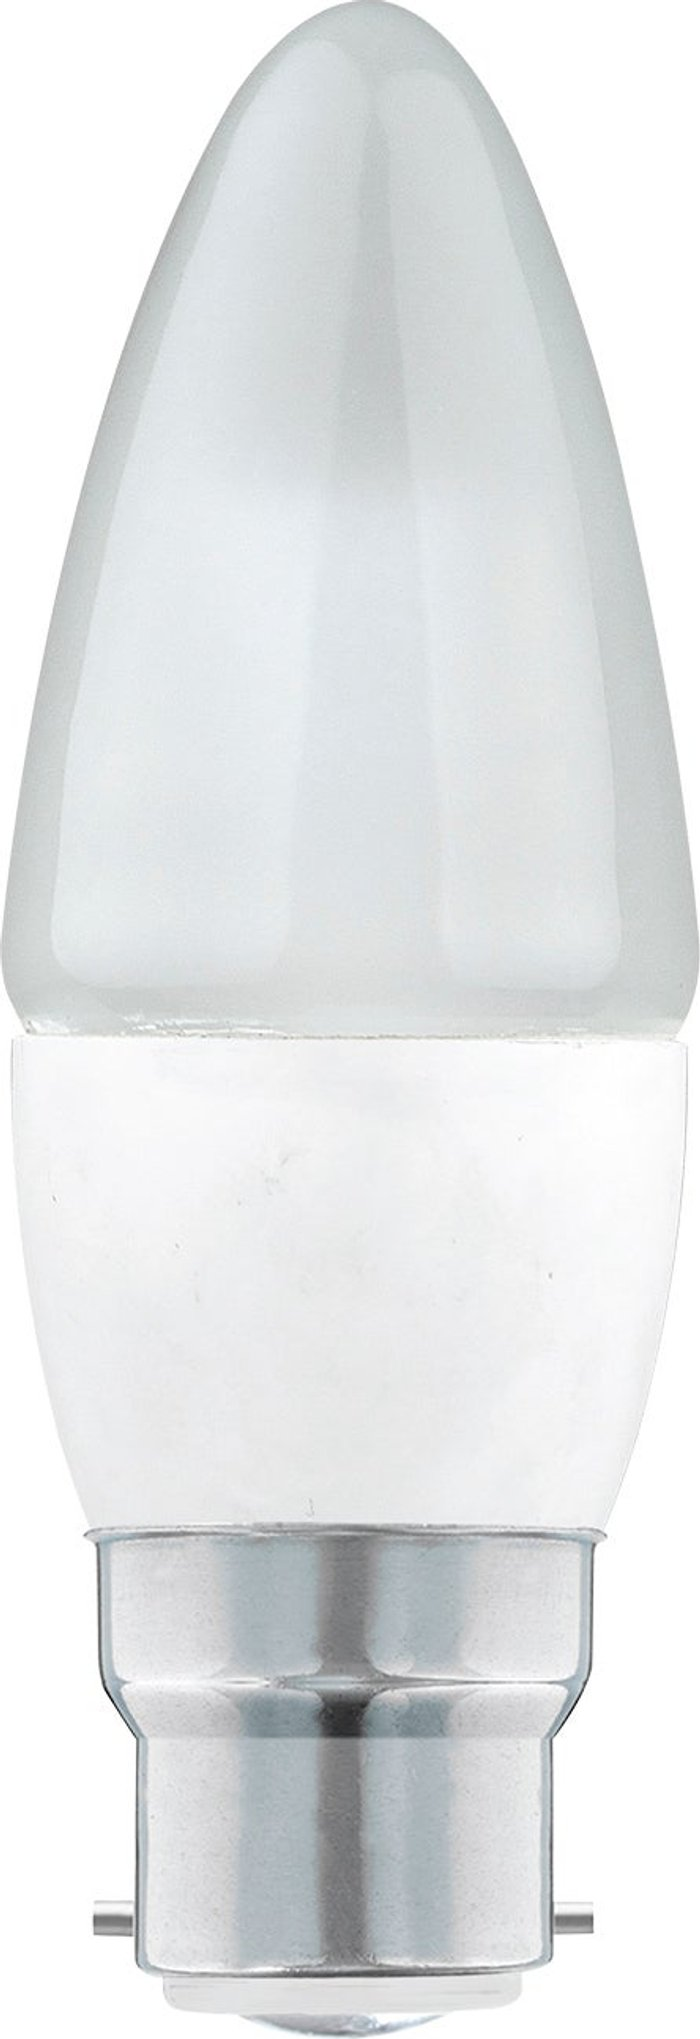 Dunelm Dunelm 5.5 Watt LED BC Pearl Candle Bulb 3 Pack Clear